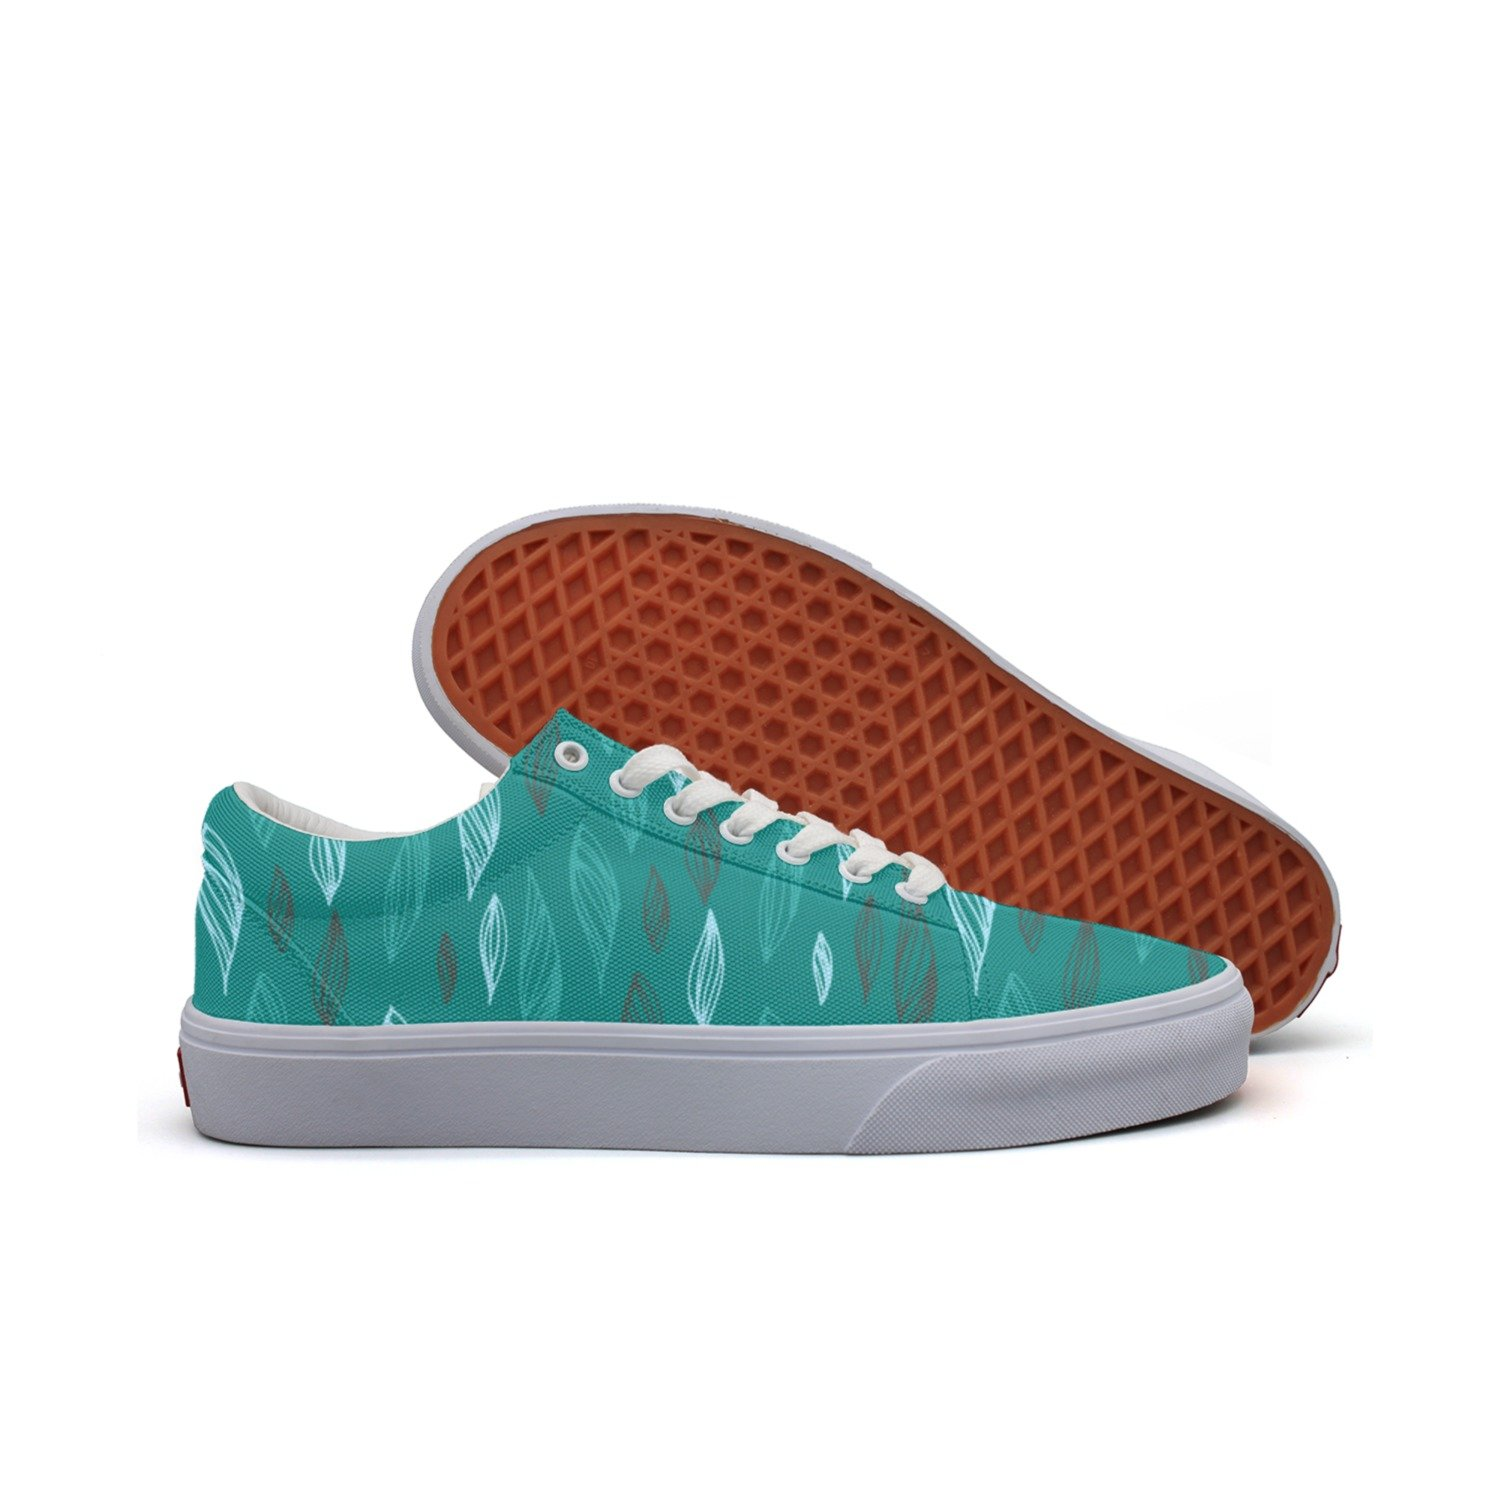 Leaves Hand Drawn Style Women's Casual Shoes Boat Athletic Print Simple